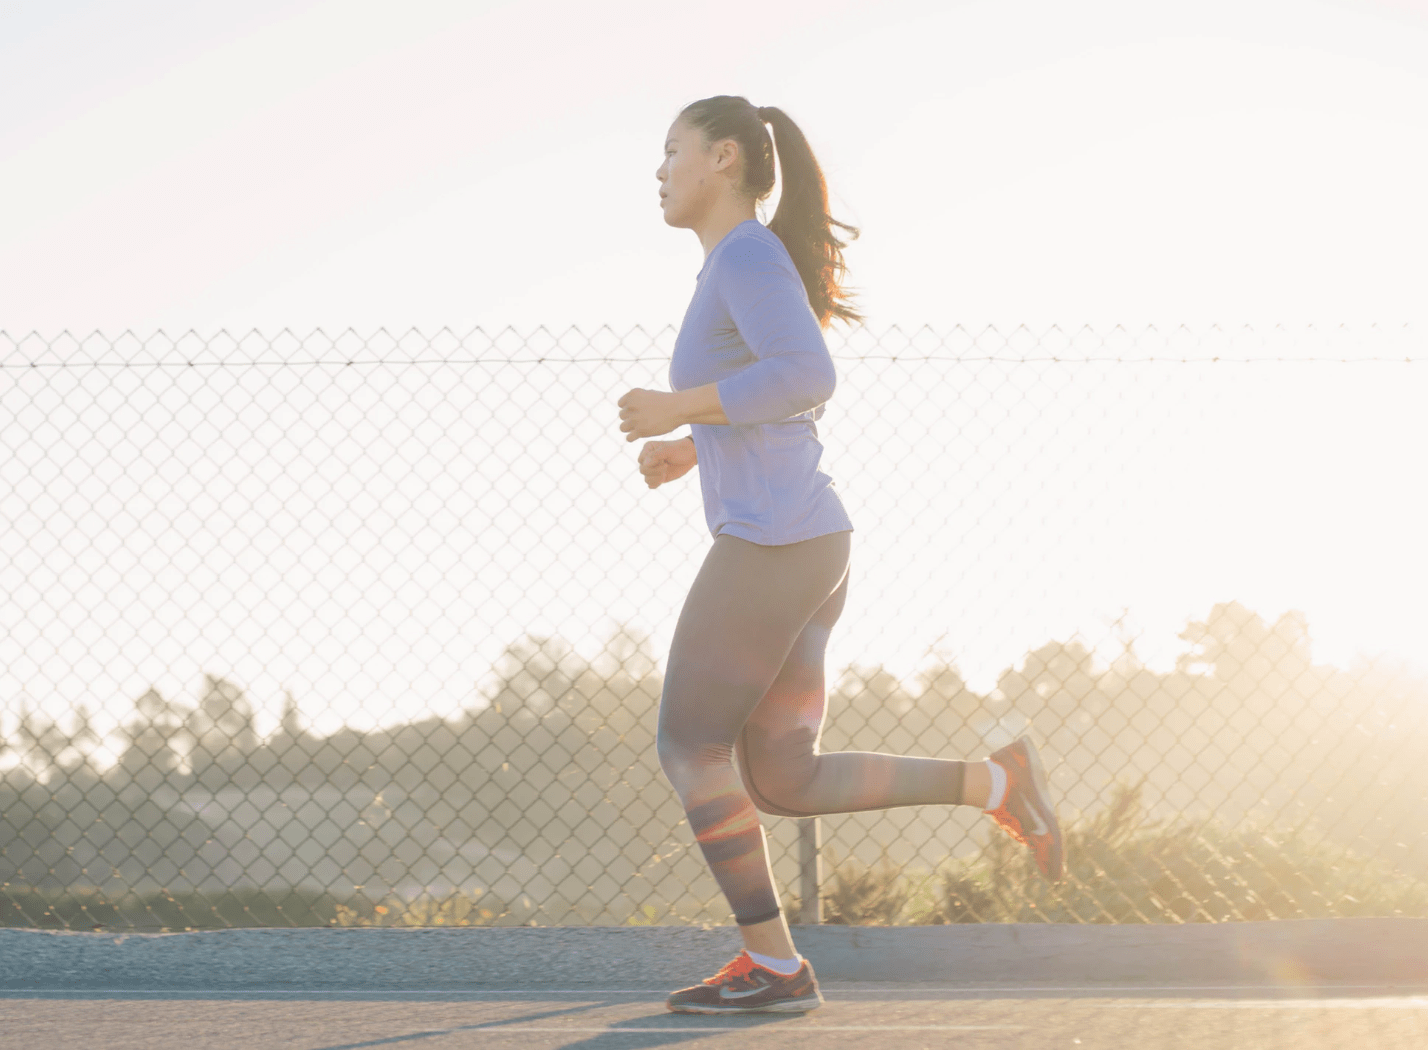 Exercise is key when you're looking to lose weight